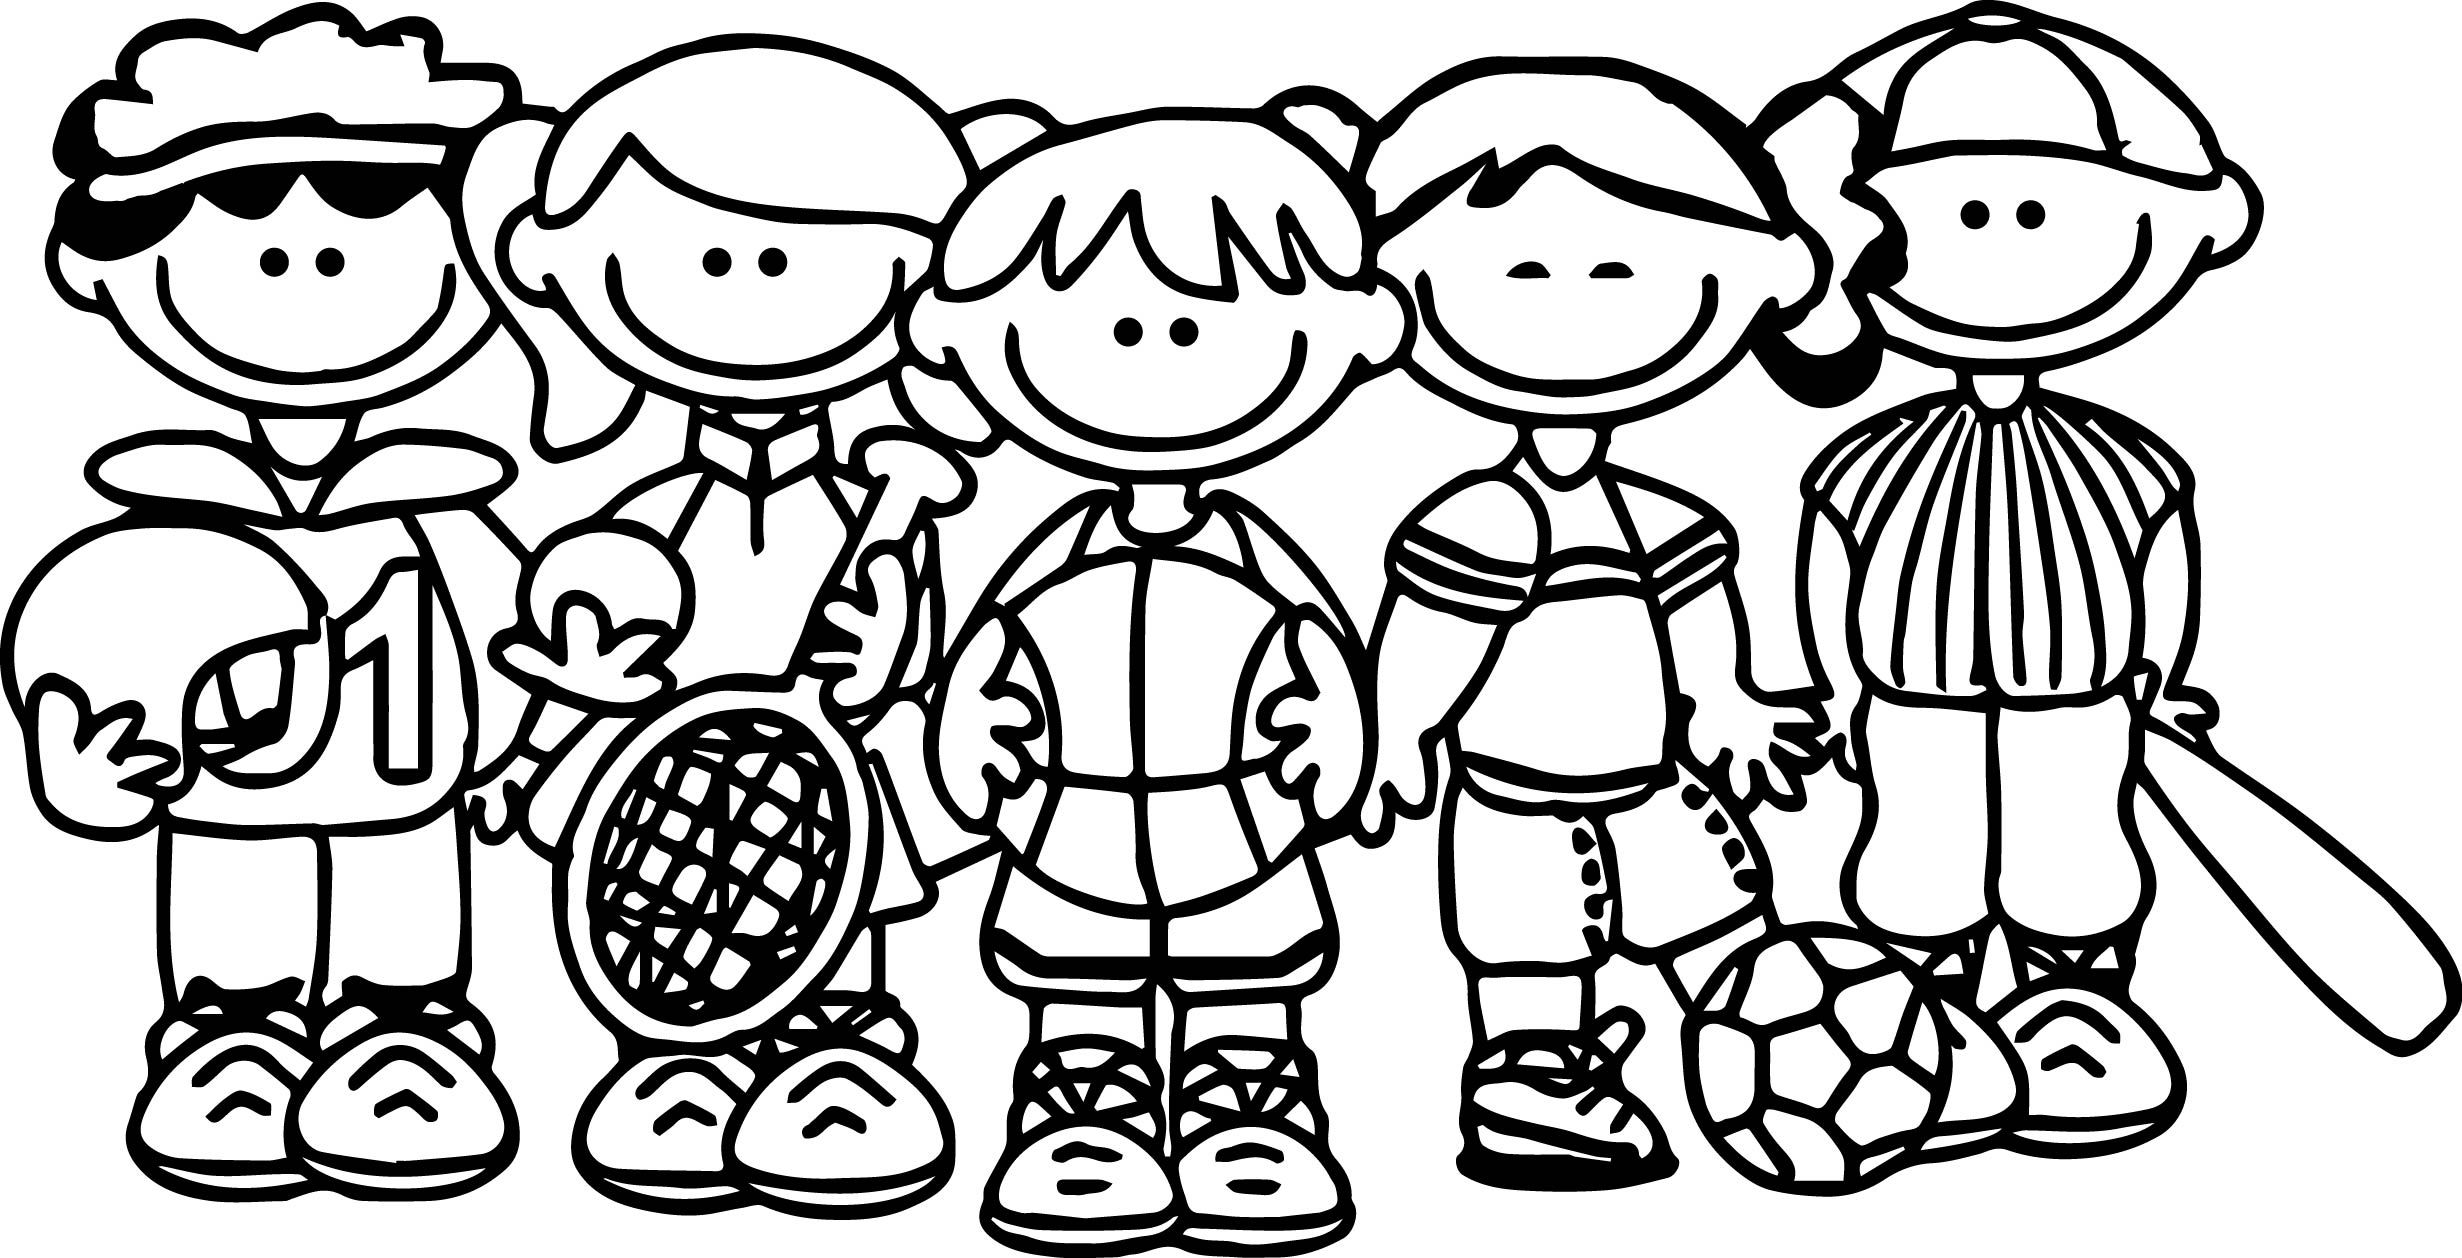 Awesome Sport Team Kids Coloring Page Sports Coloring Pages Football Coloring Pages Kid Coloring Page